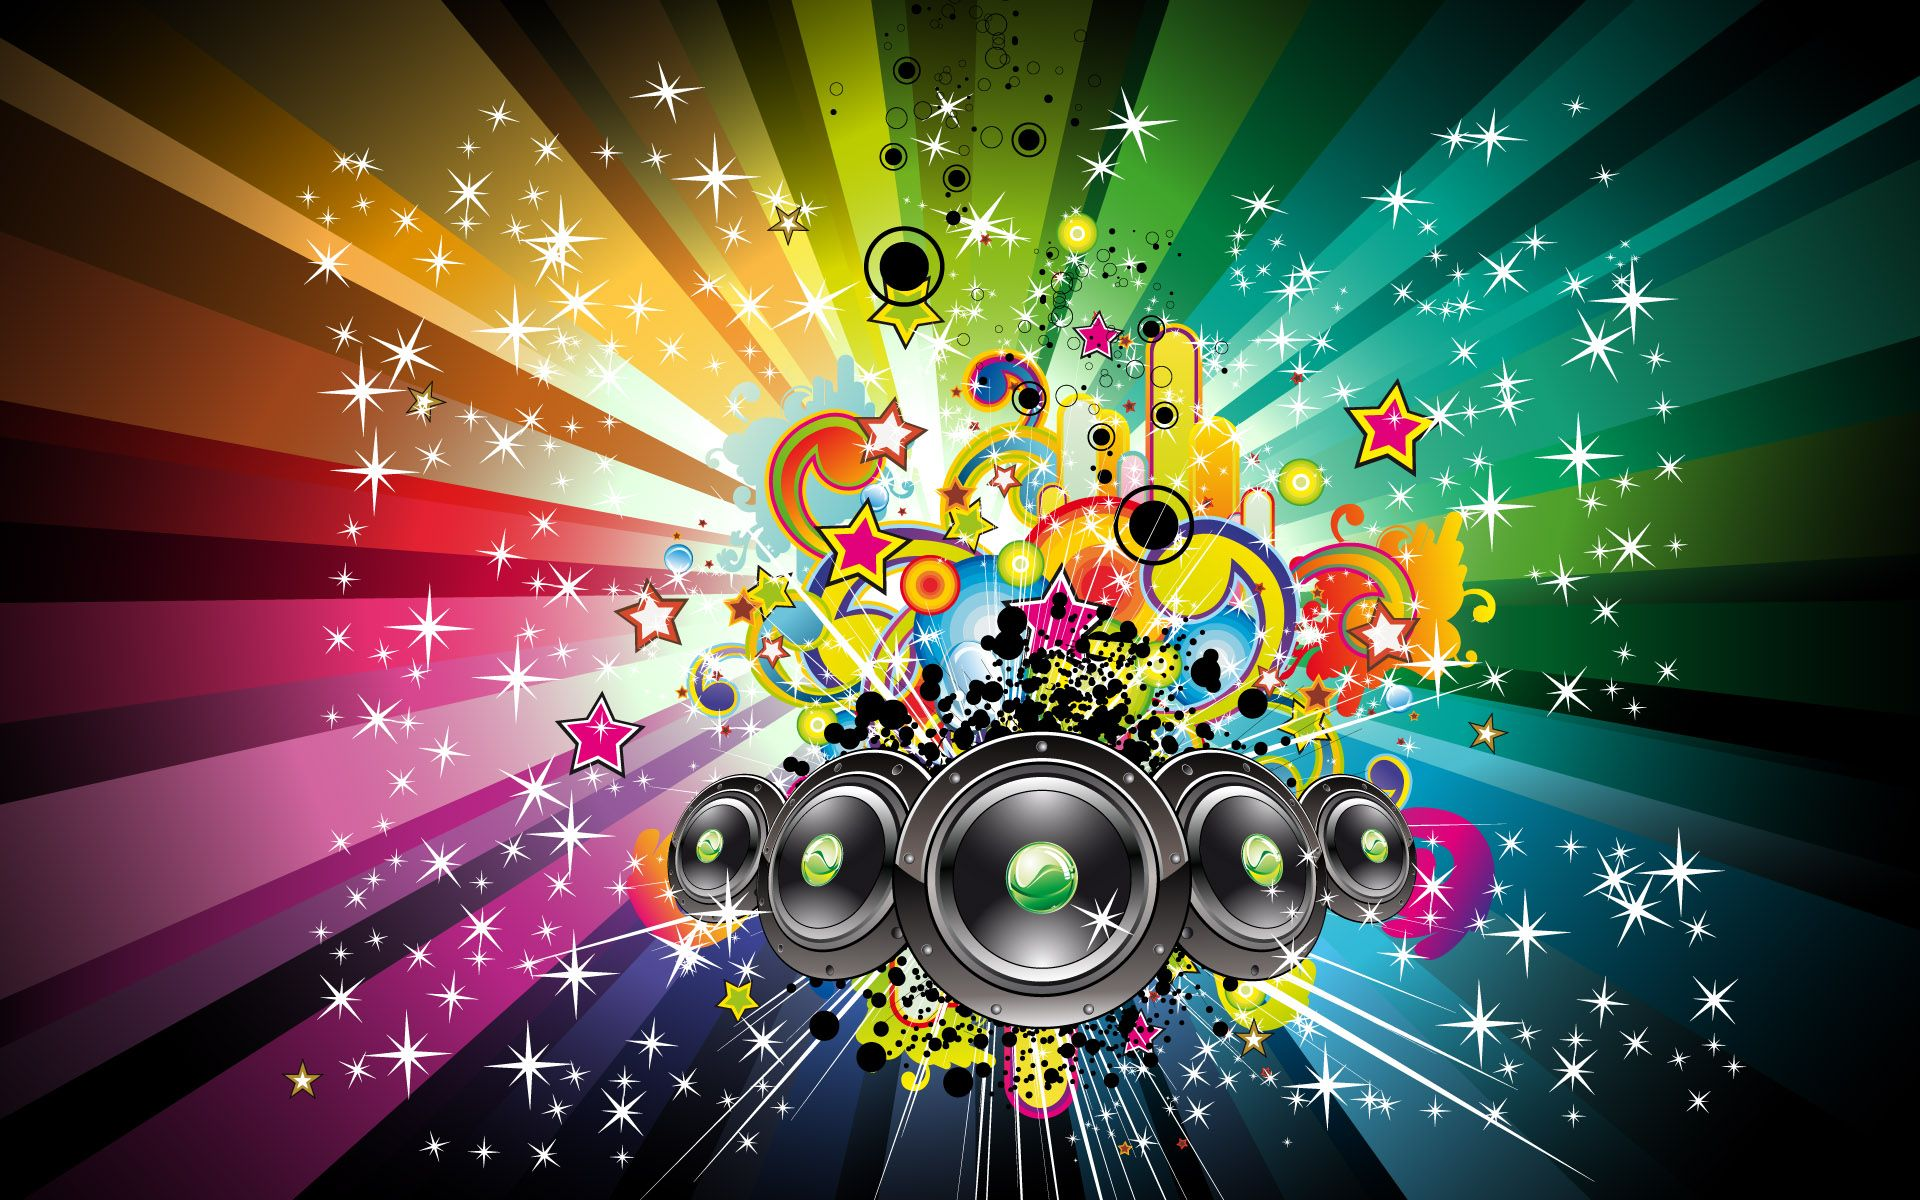 Bollywood Theme Wallpapers - Top Free Bollywood Theme Backgrounds